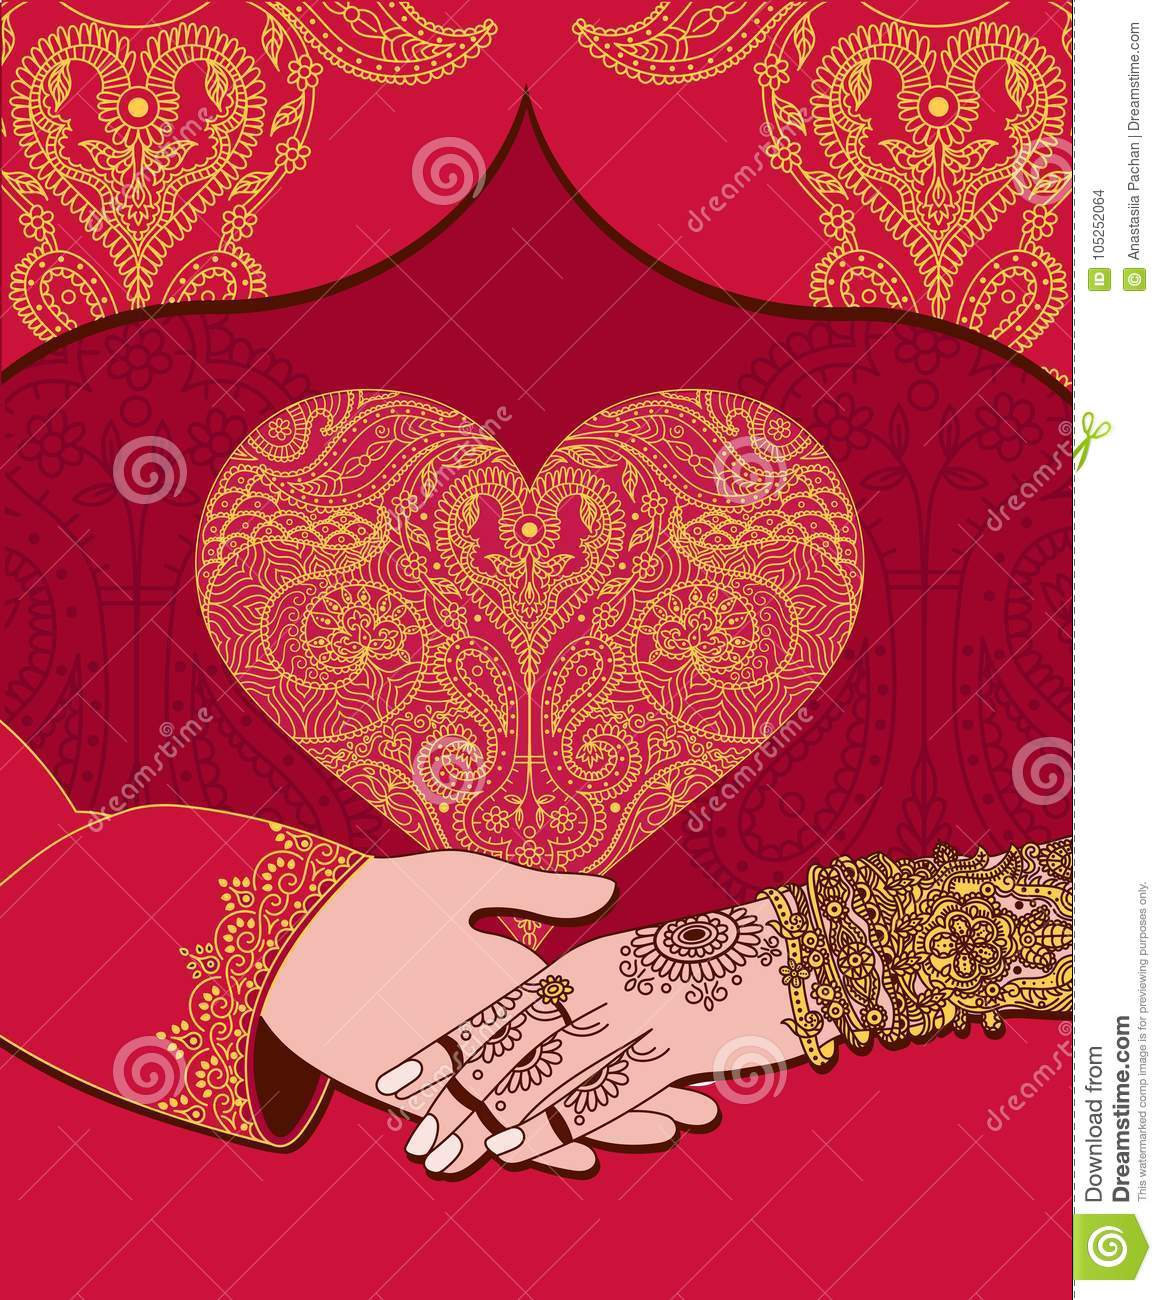 Wedding Indian Invitation Card With Golden Heart. India Marriage ...